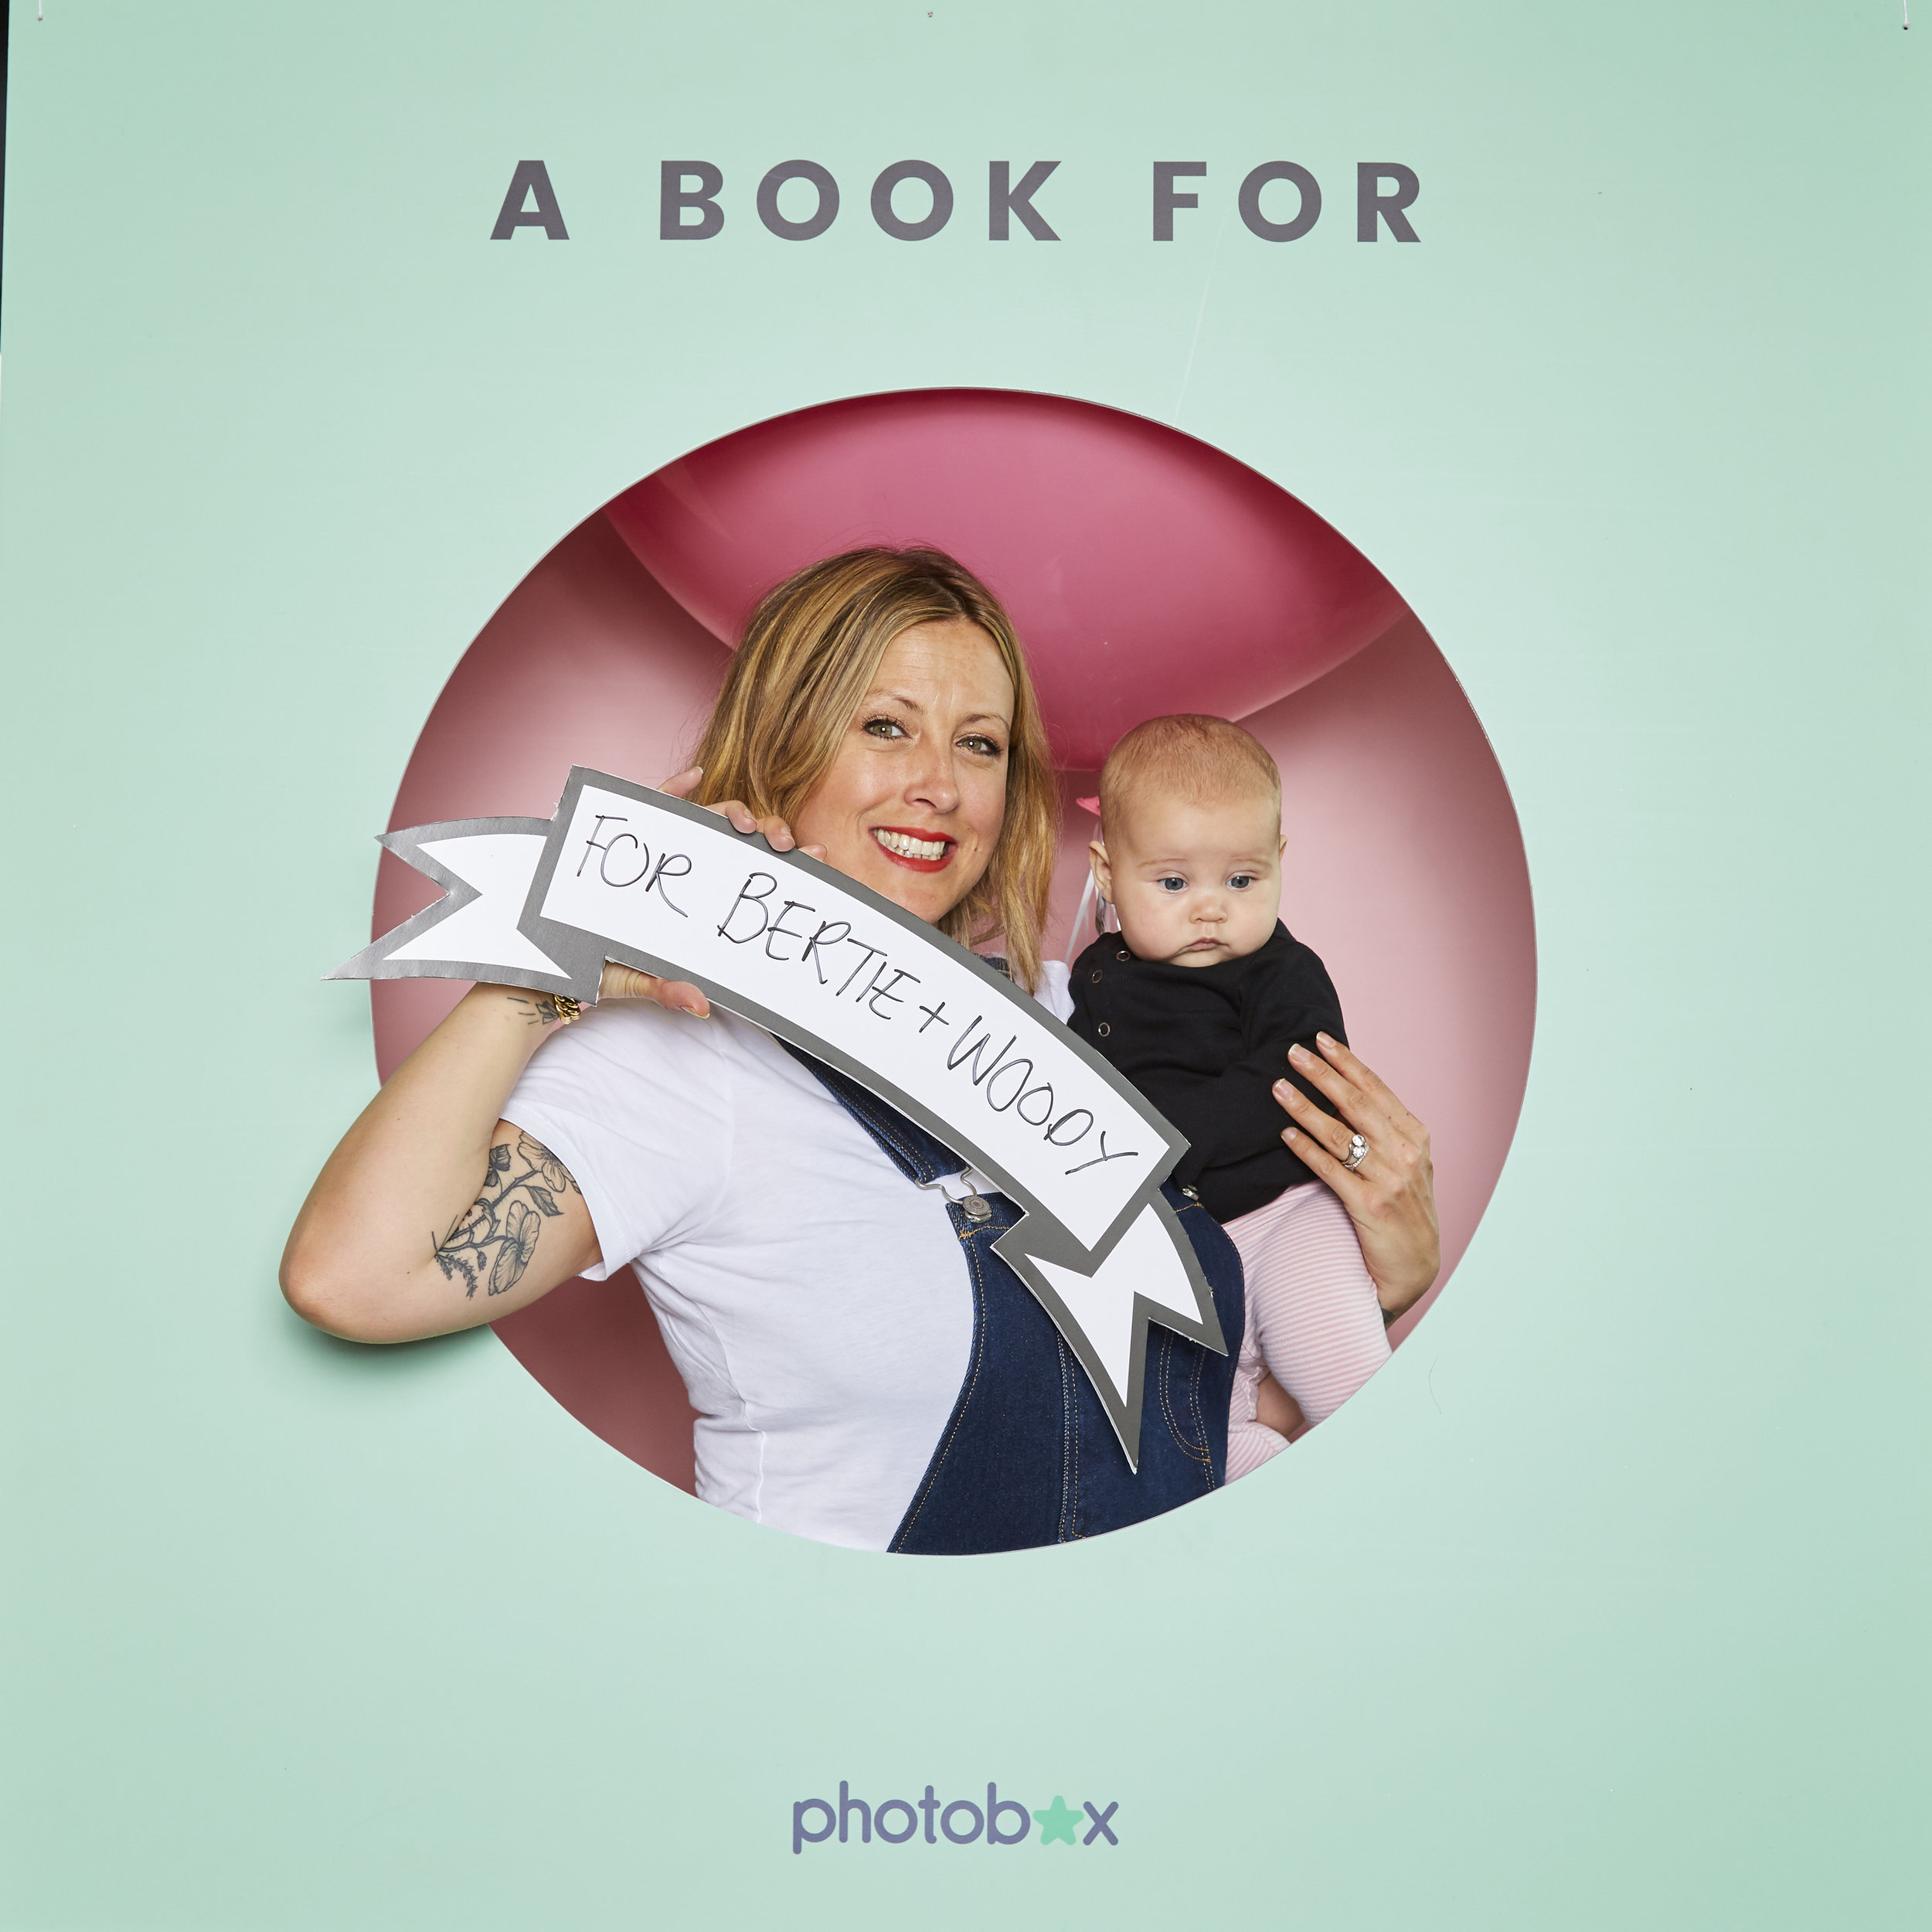 Photobox x Clemmie Telford